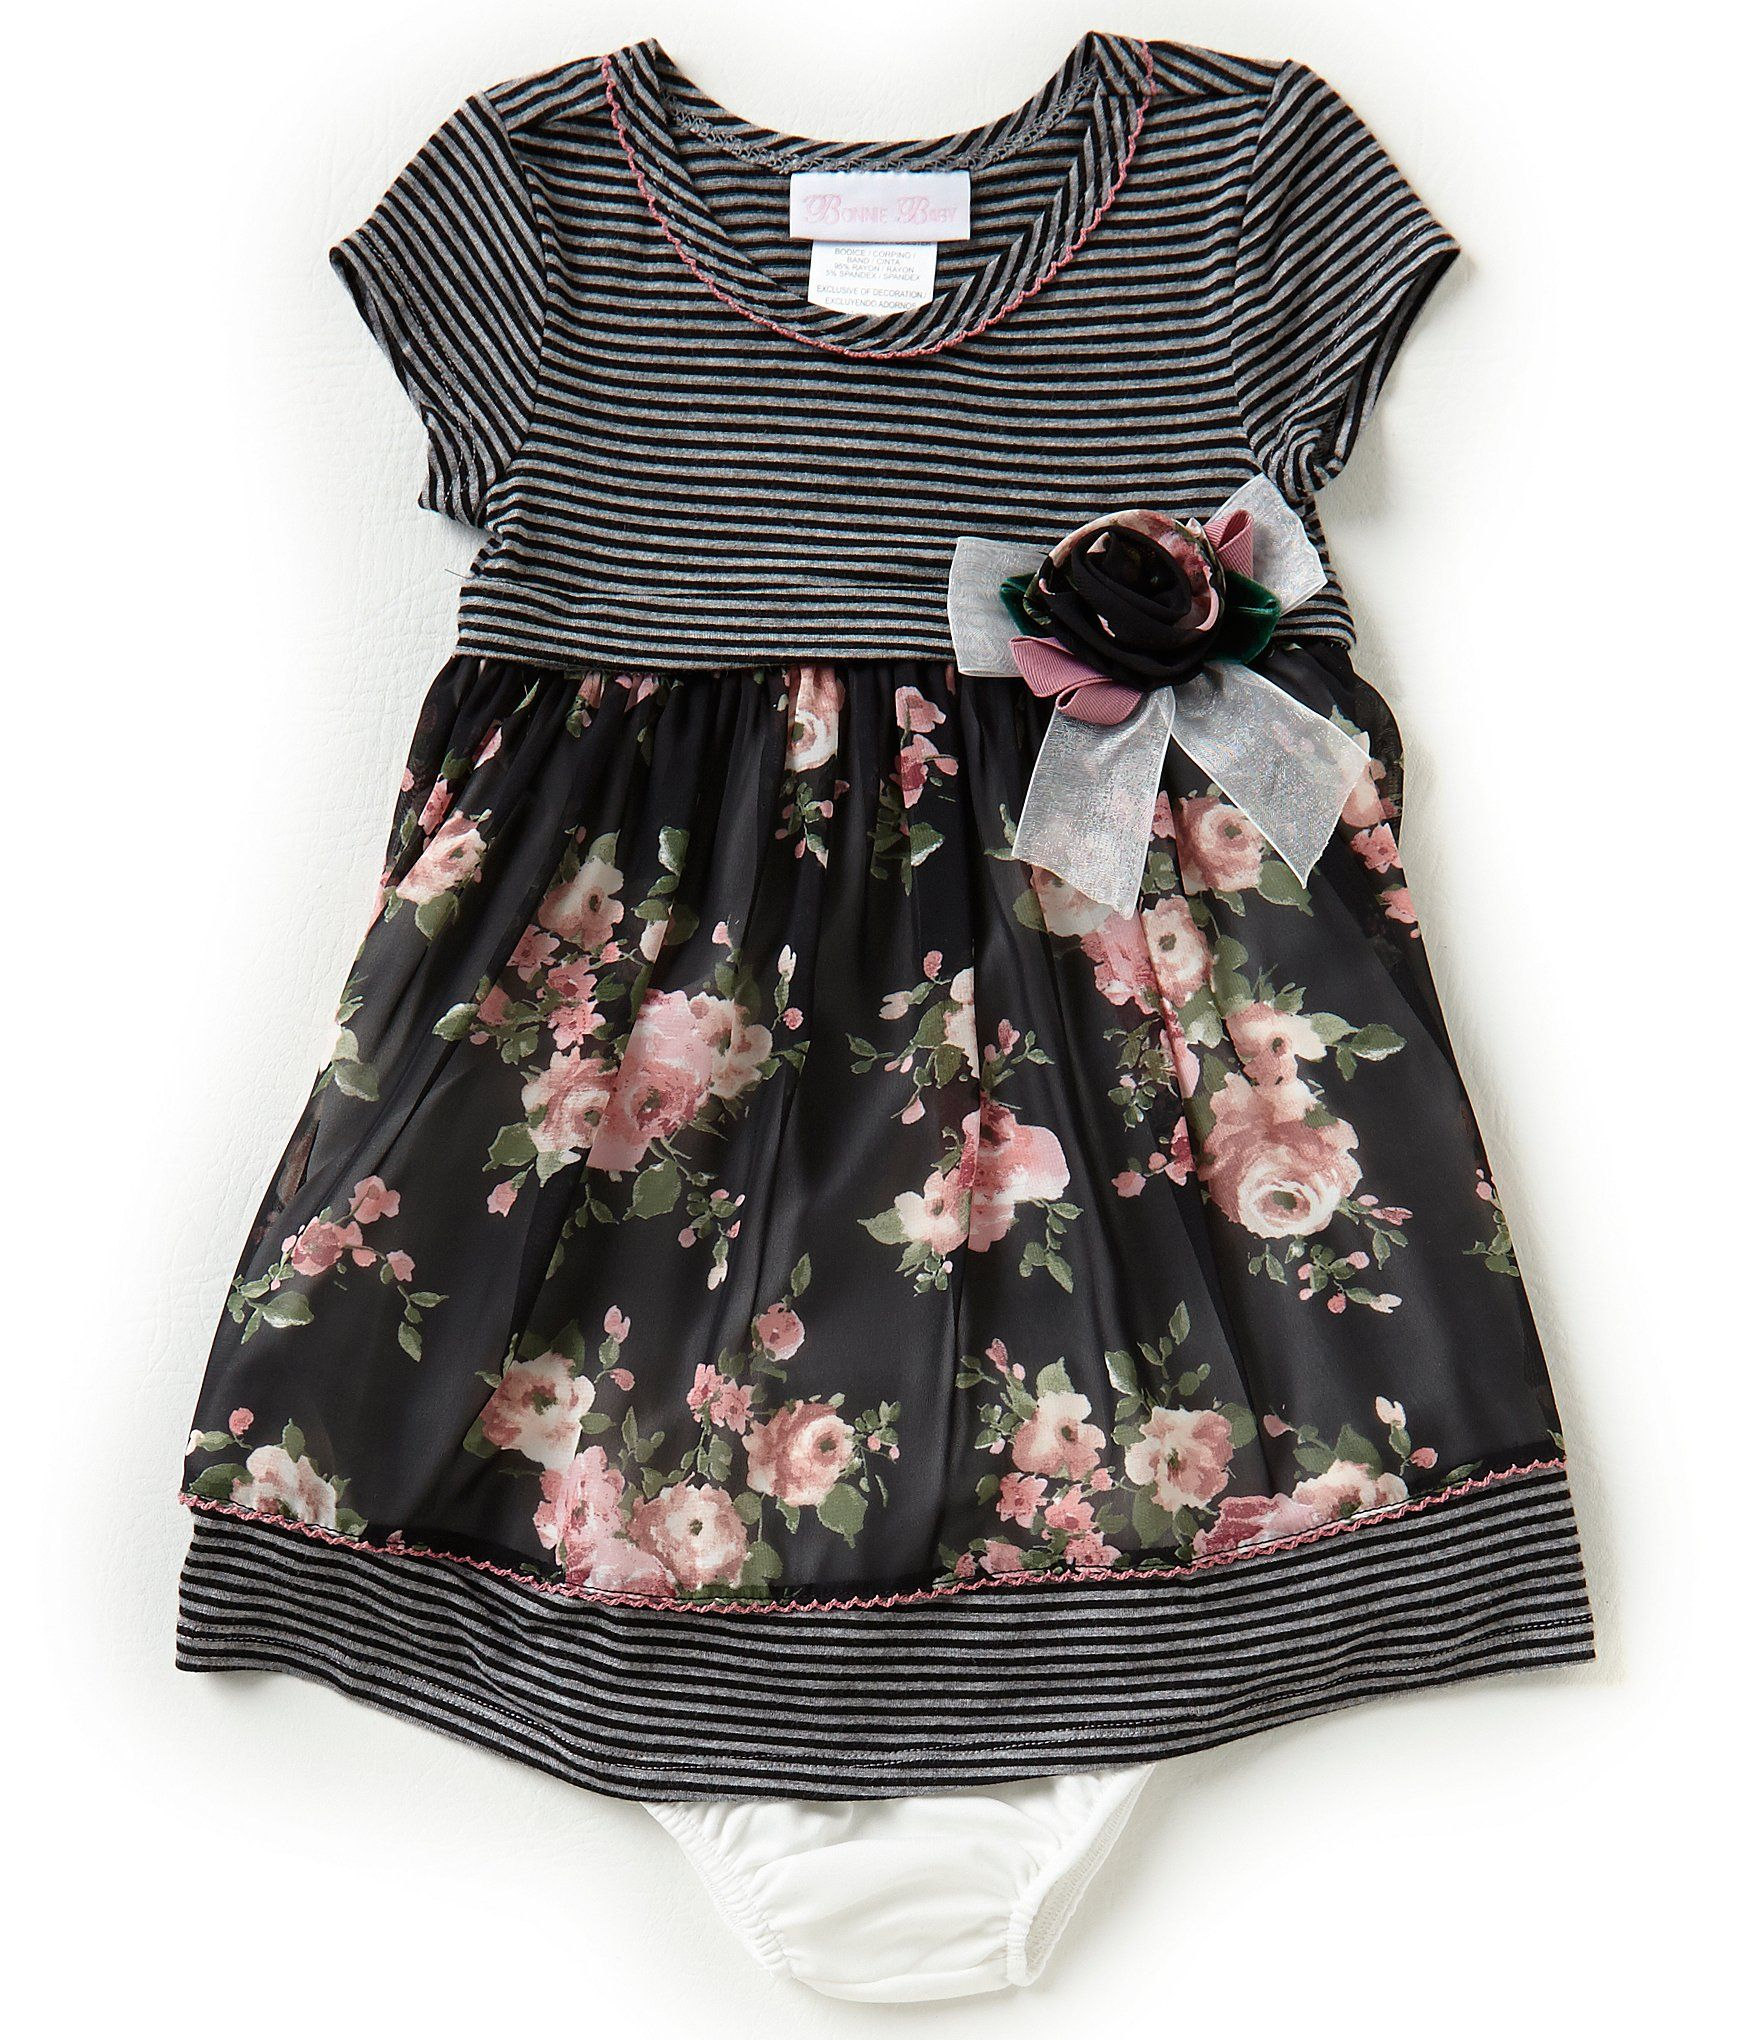 Shop for Bonnie Baby Baby Girls Newborn 24 Months Striped Floral A